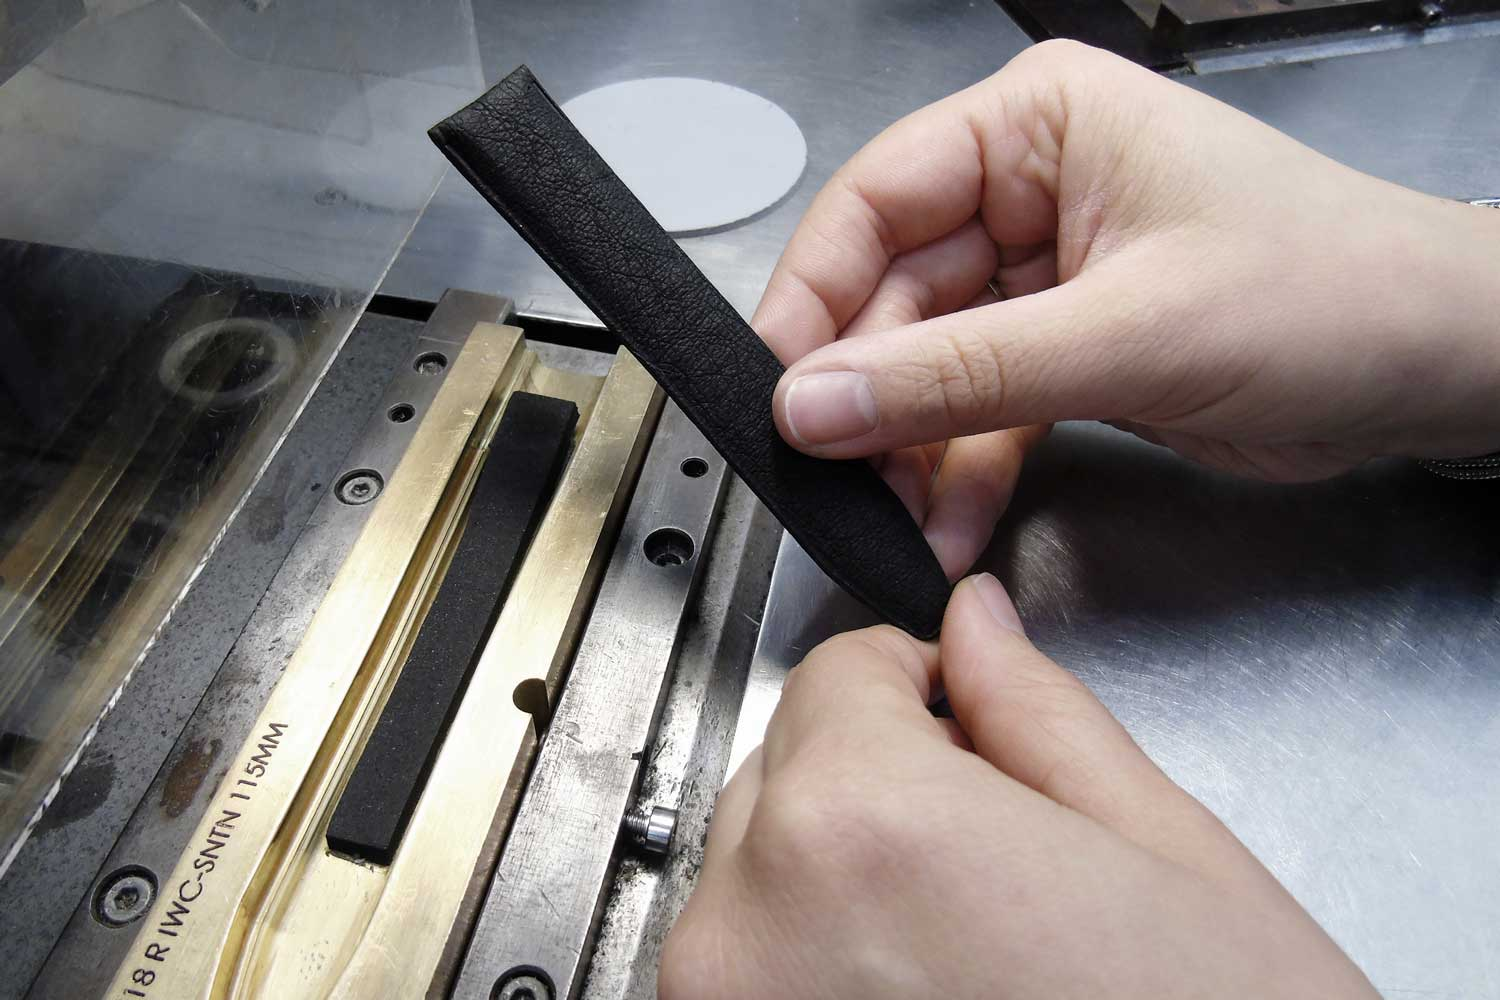 The strap-making process has over 60 stages and results in a material that resembles grained leather and is water resistant, durable and beautiful.